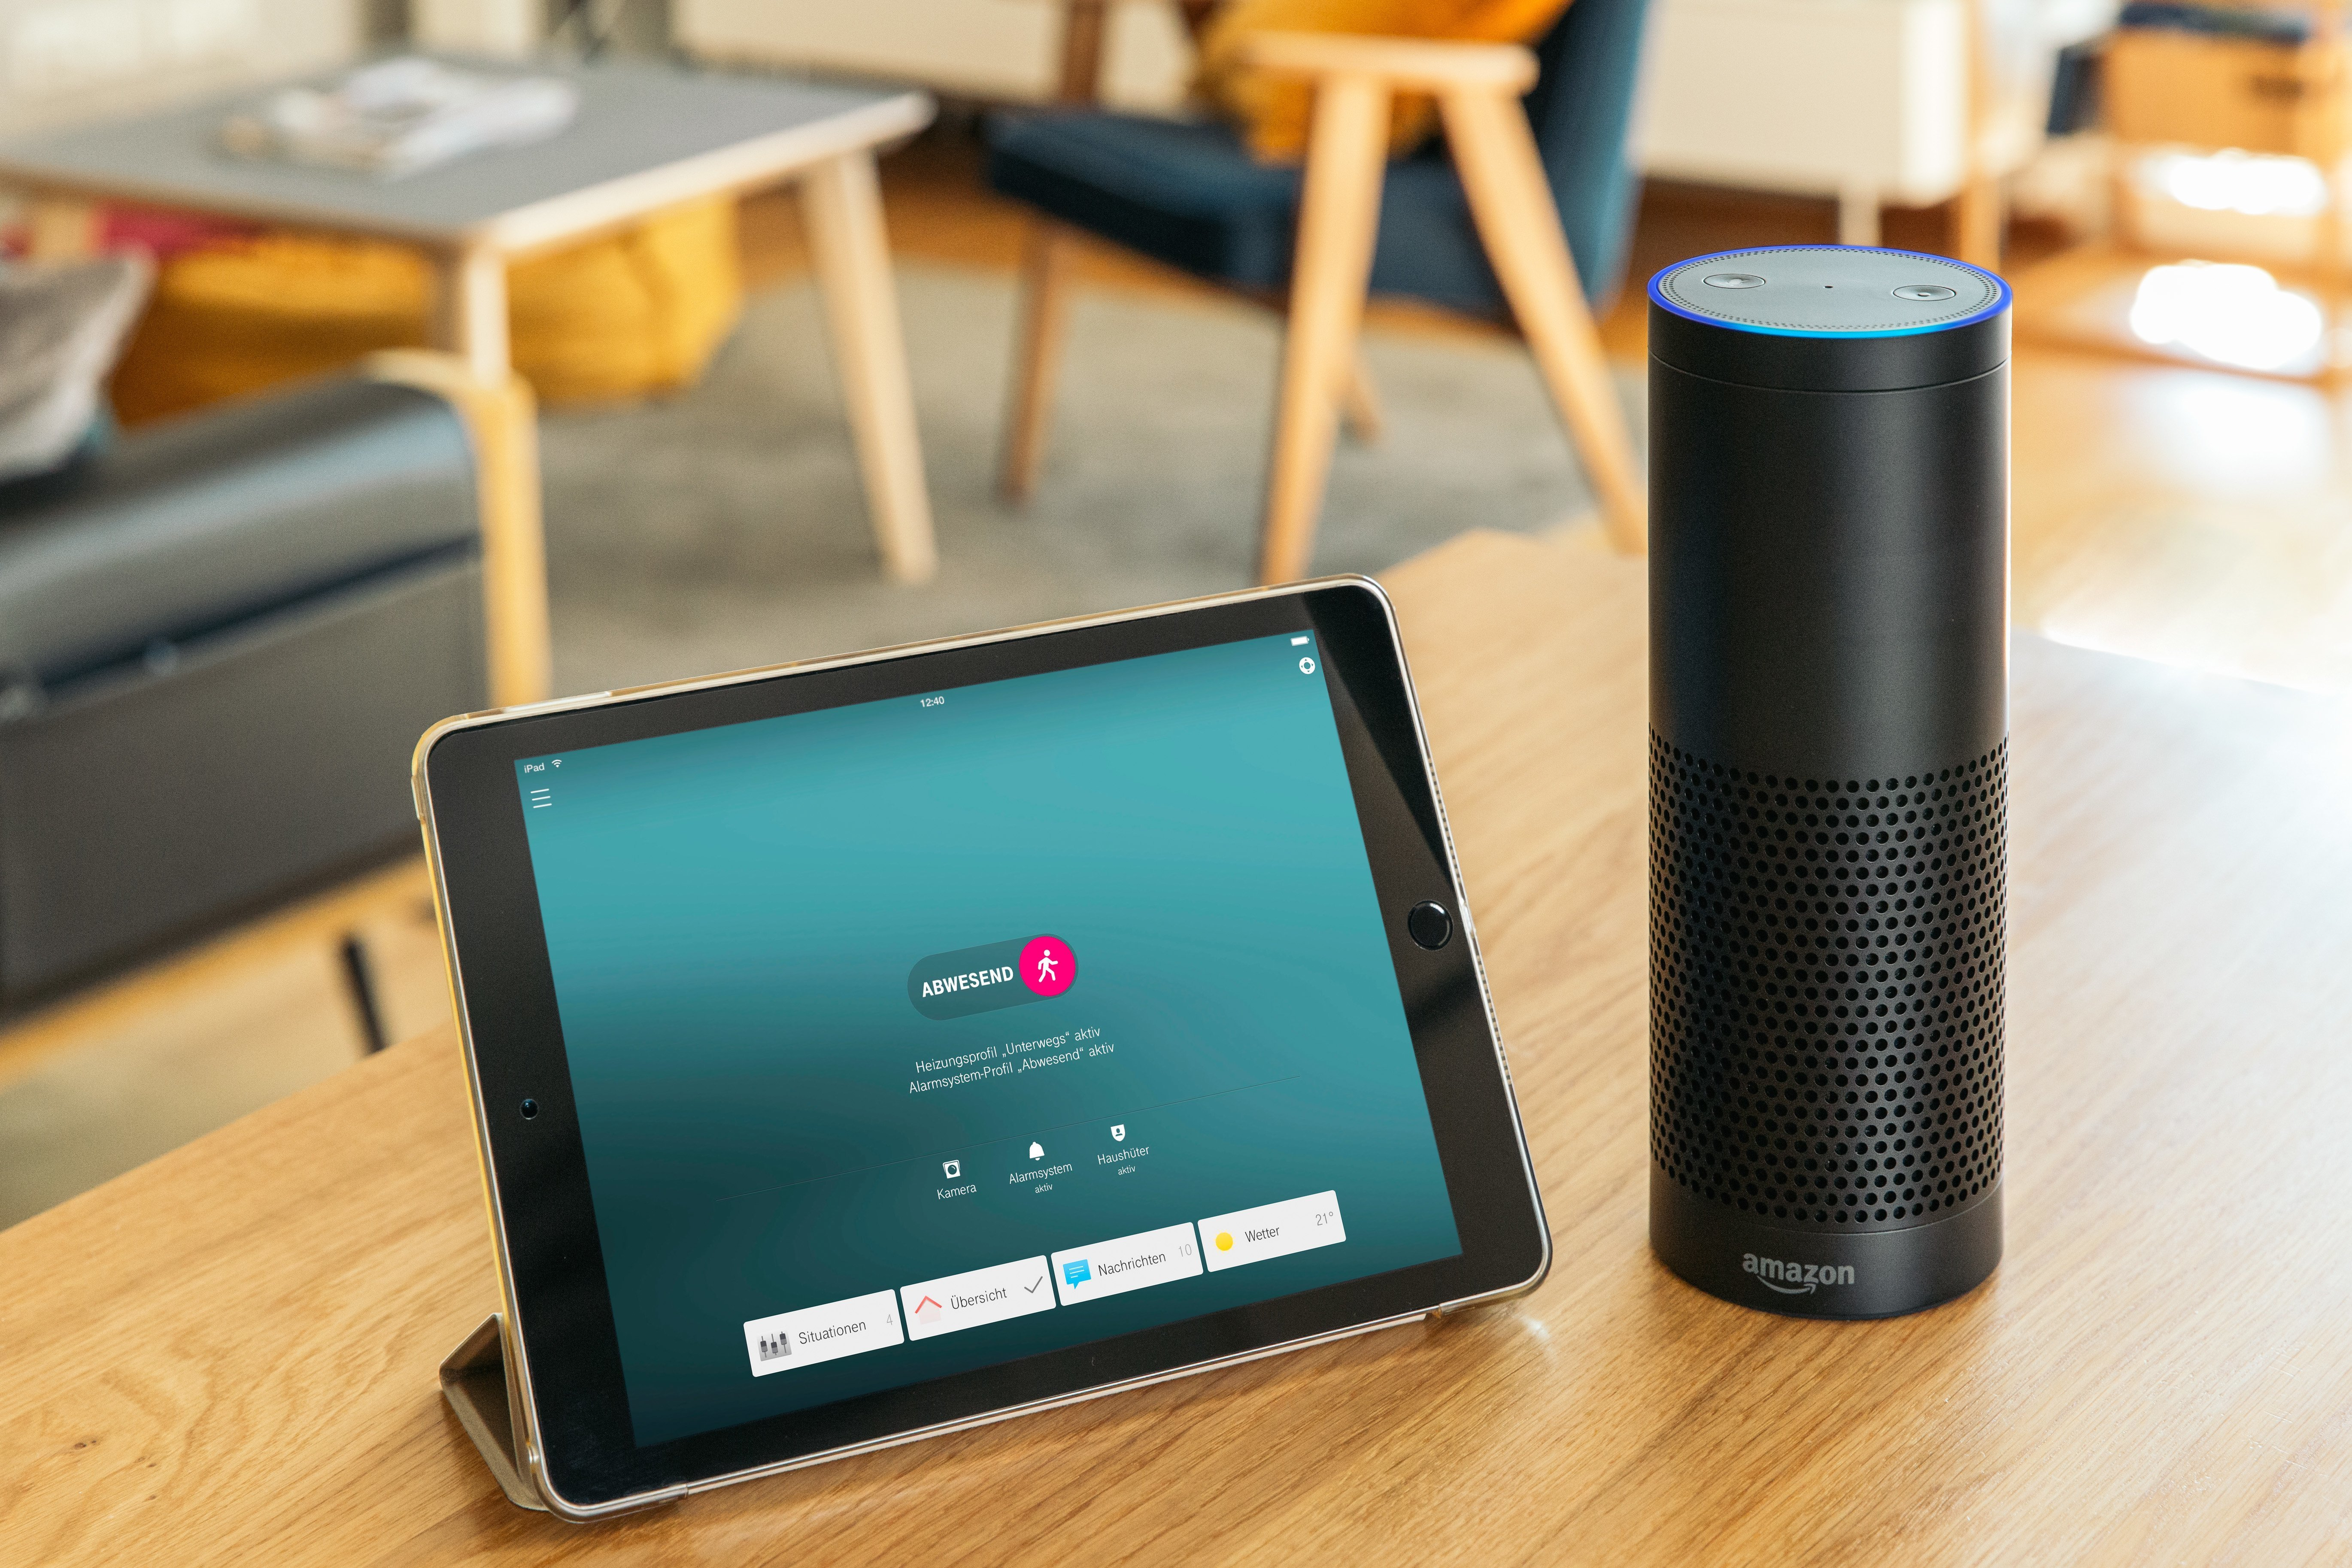 Amazon ECHO in connection with Telekom SmartHome app on tablet